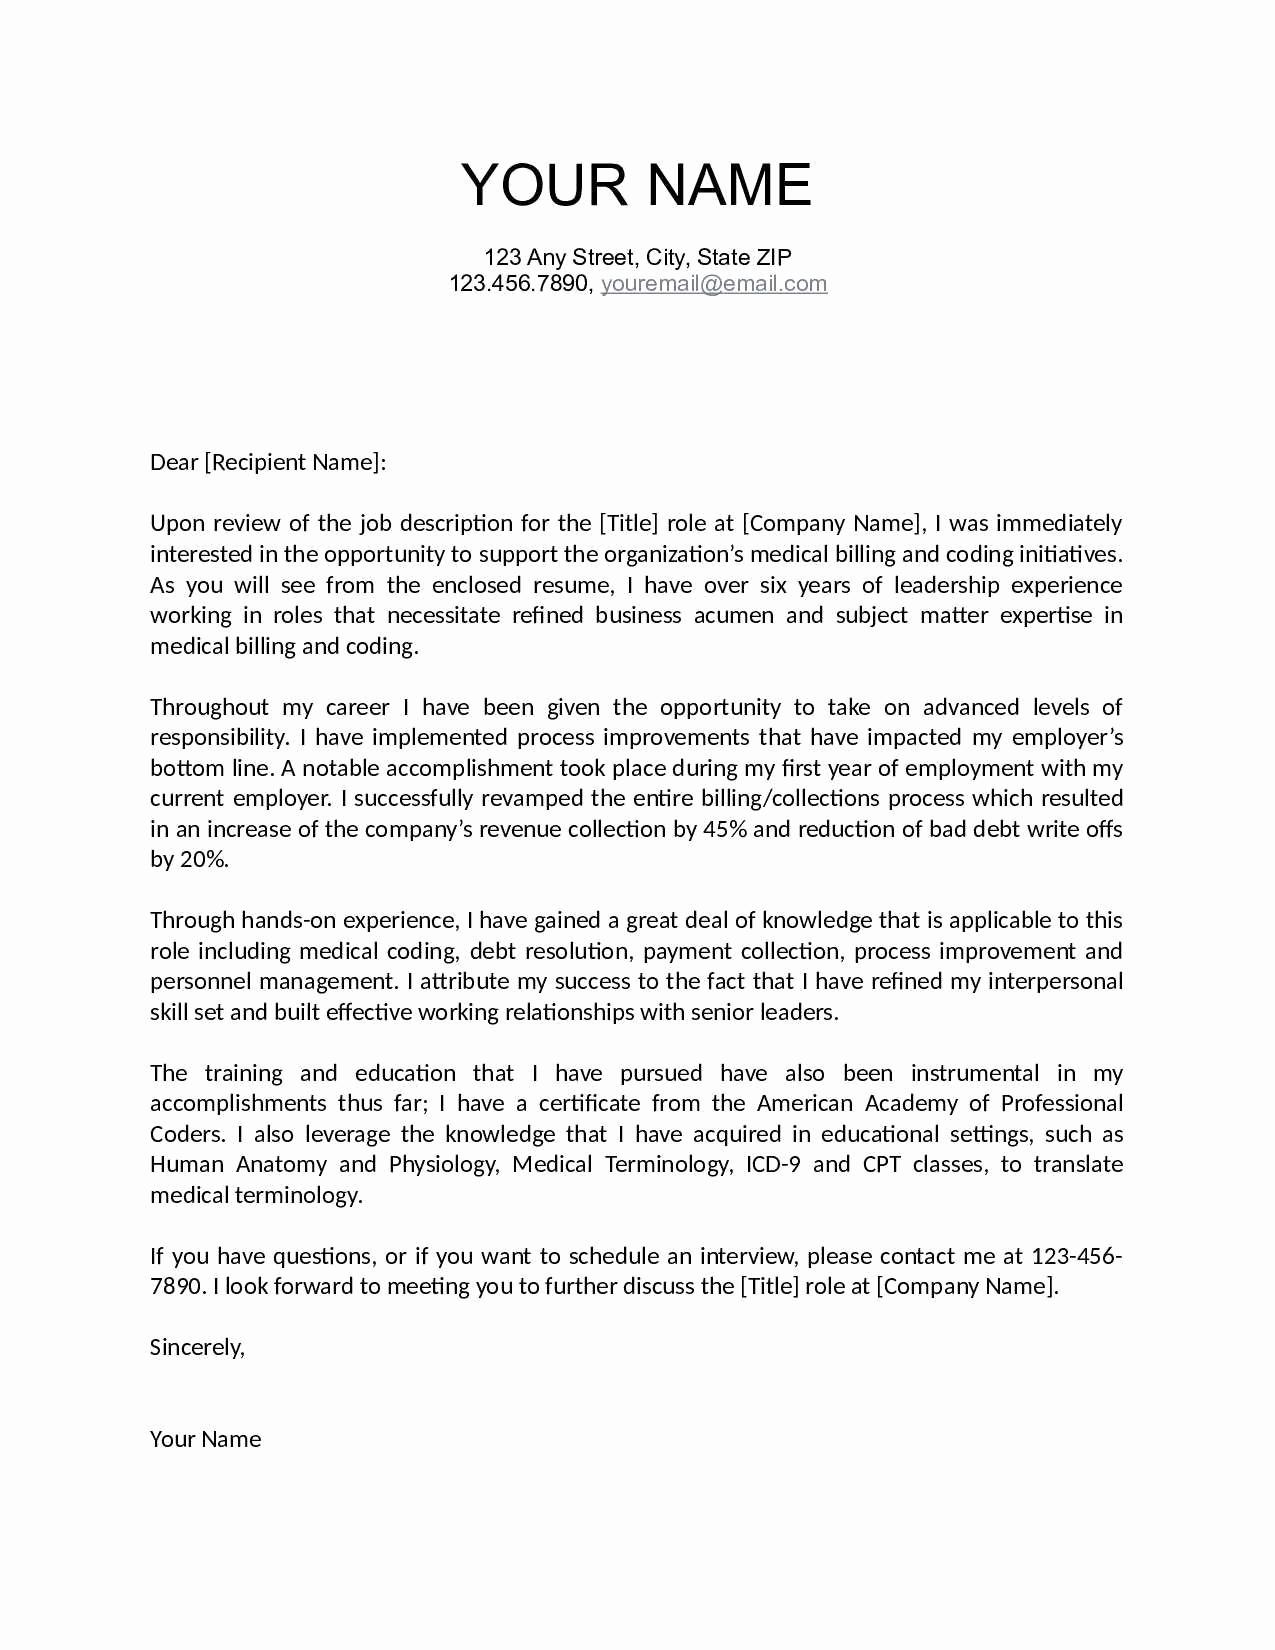 Good Cover Letter Template - Writing A Good Cover Letter Beautiful Cover Letter Overseas Job New